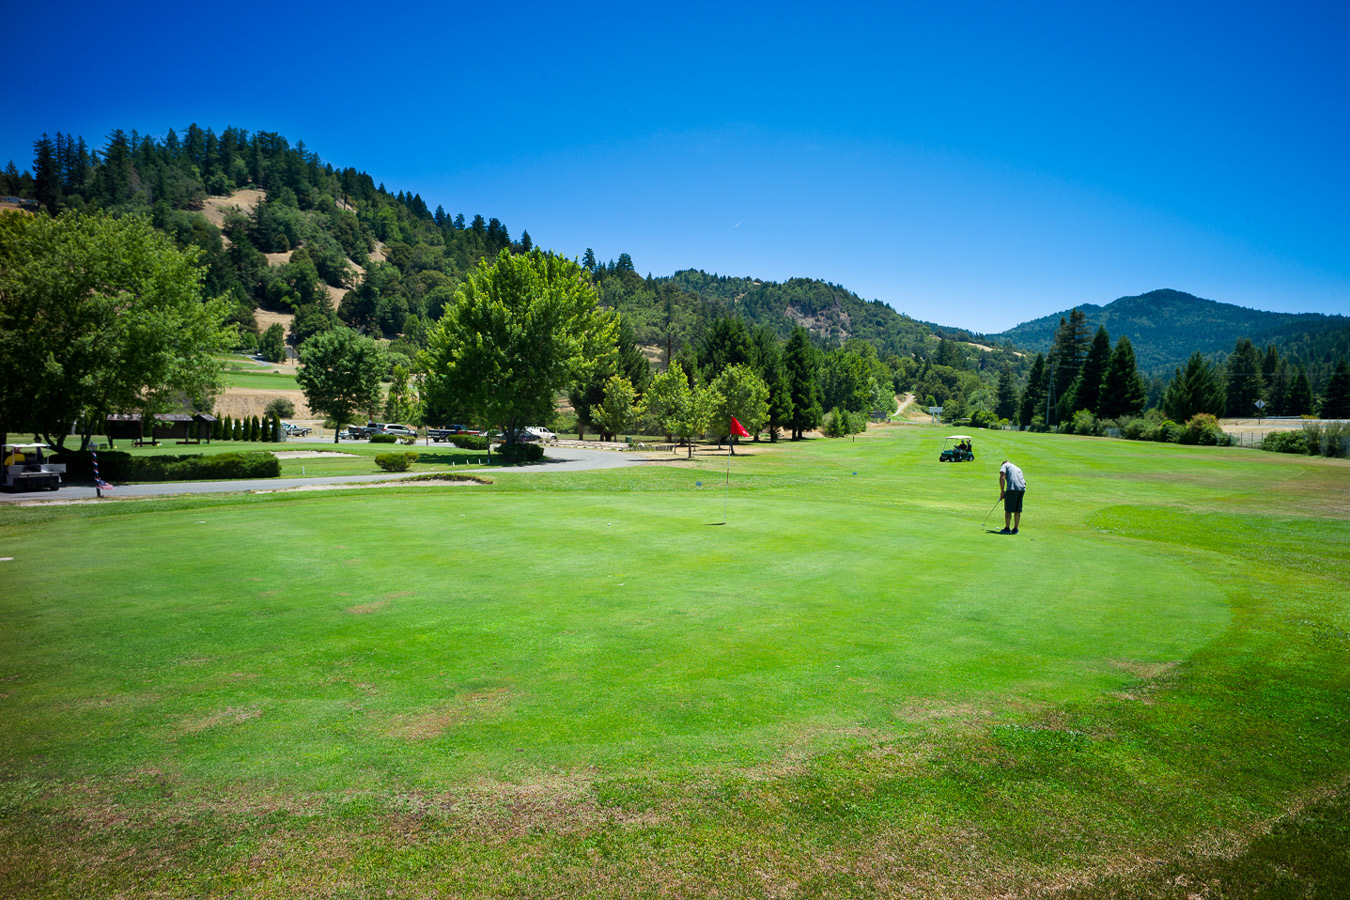 banner image is of Benbow KOA 9-Hole Golf Course